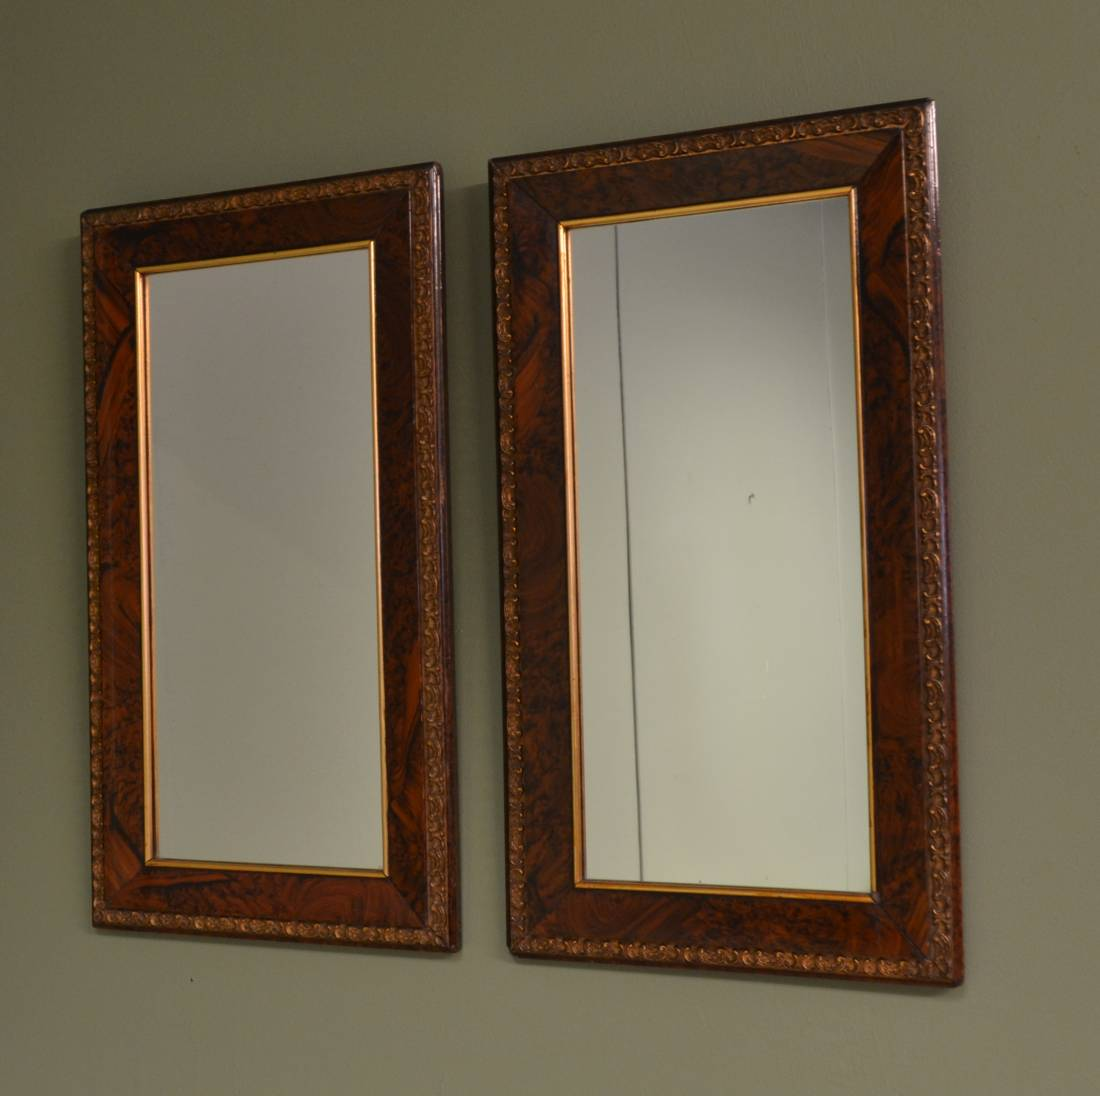 Pair of Antique Edwardian Decorative Mirrors